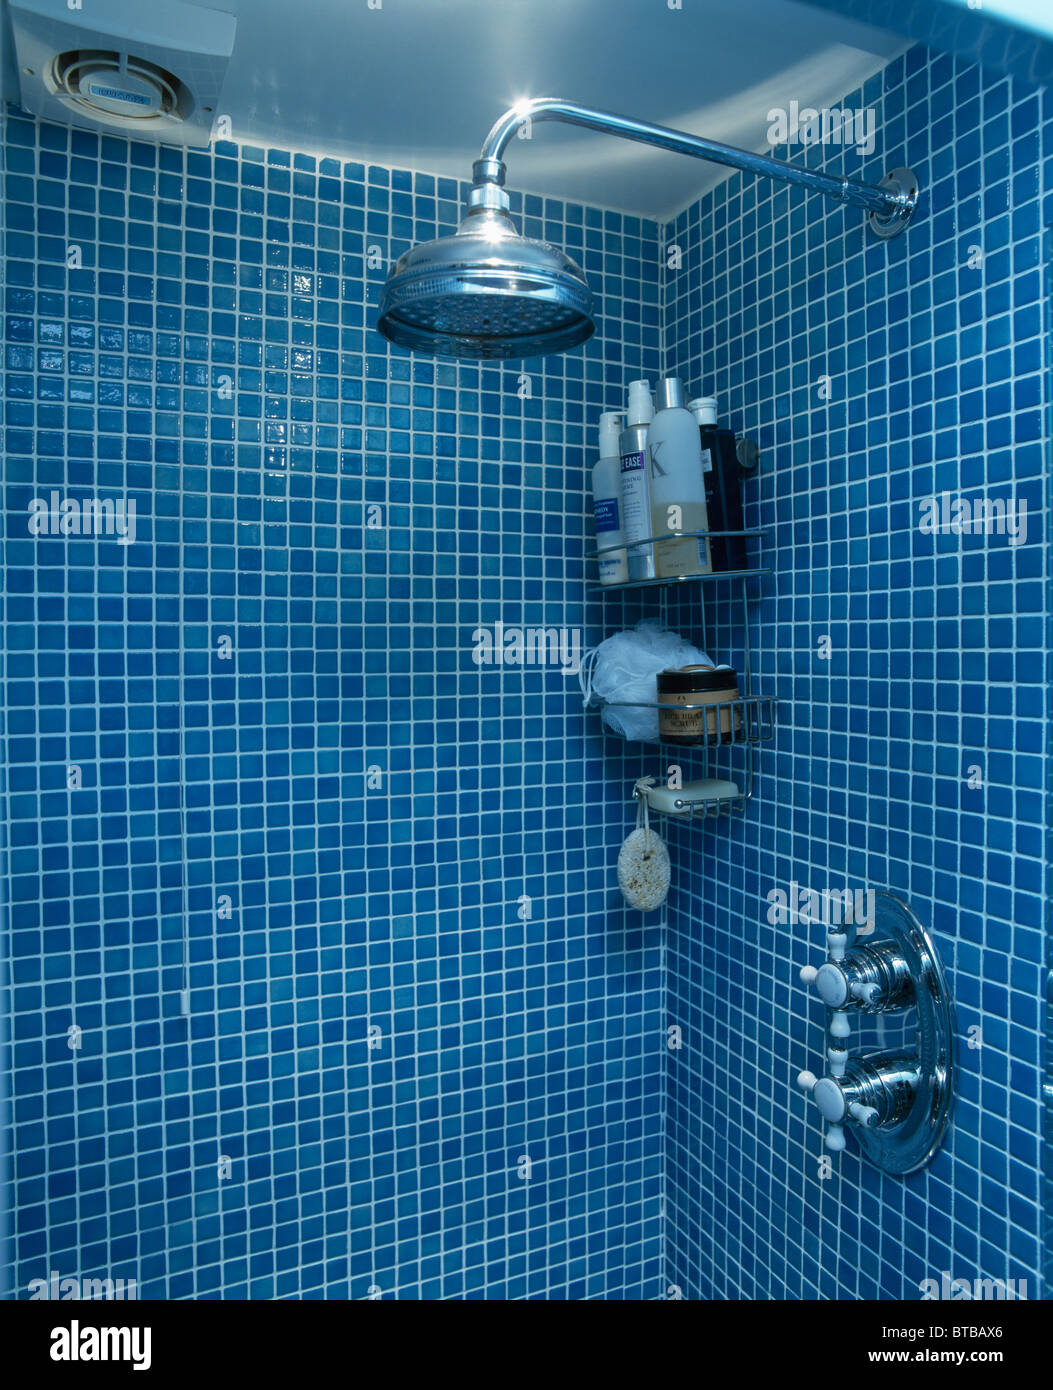 Close-up of chrome shower-head in blue mosaic tiled shower with ...